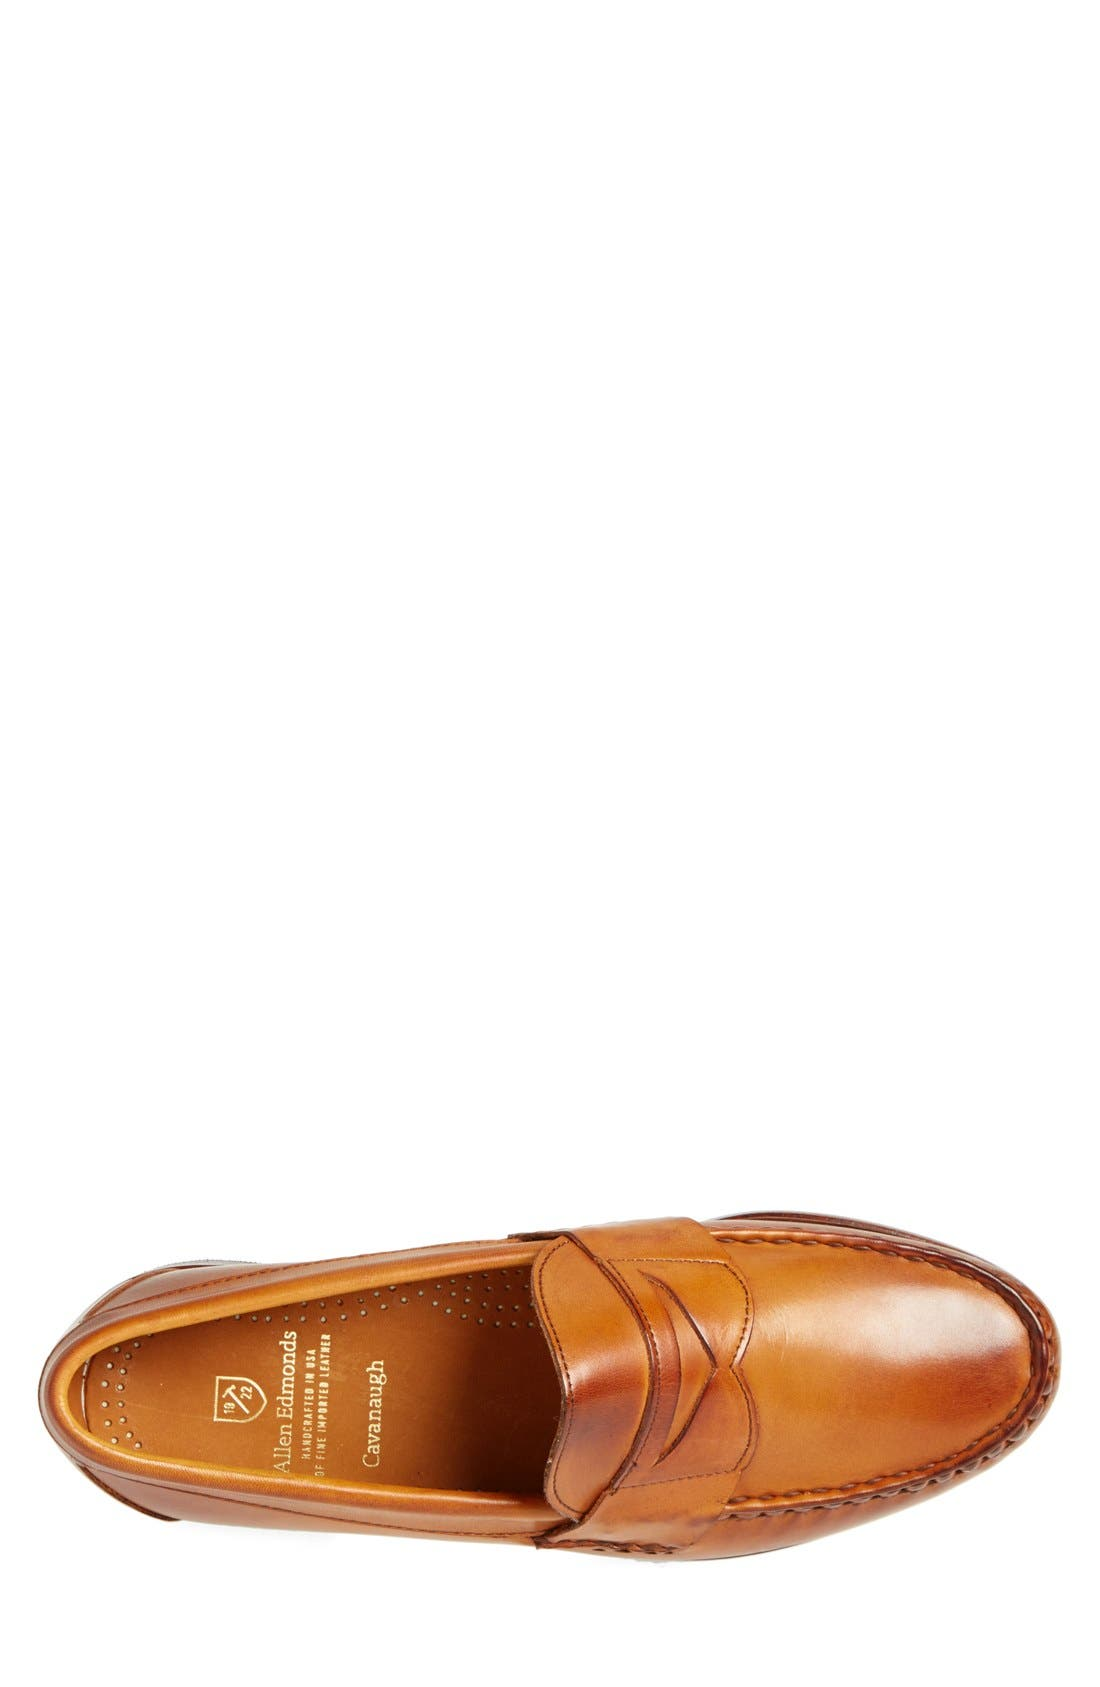 'Cavanaugh' Penny Loafer,                             Alternate thumbnail 3, color,                             WALNUT LEATHER